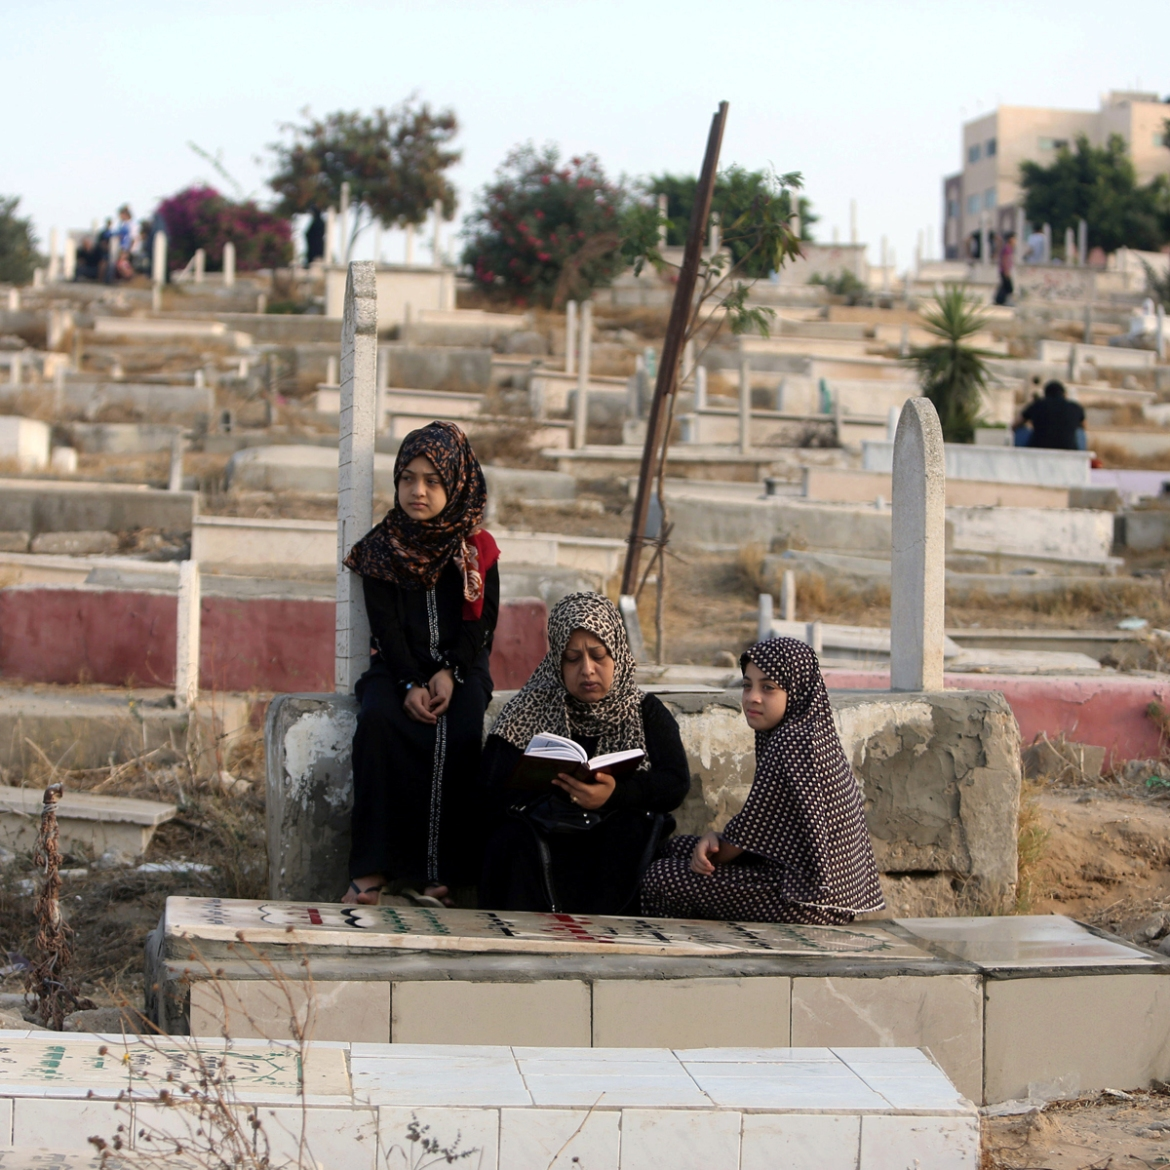 A Palestinian woman reads the Koran next to the grave of her son at a cemetery on the first day of Eid al-Fitr in Gaza City. [Ibraheem Abu Mustafa/Reuters]